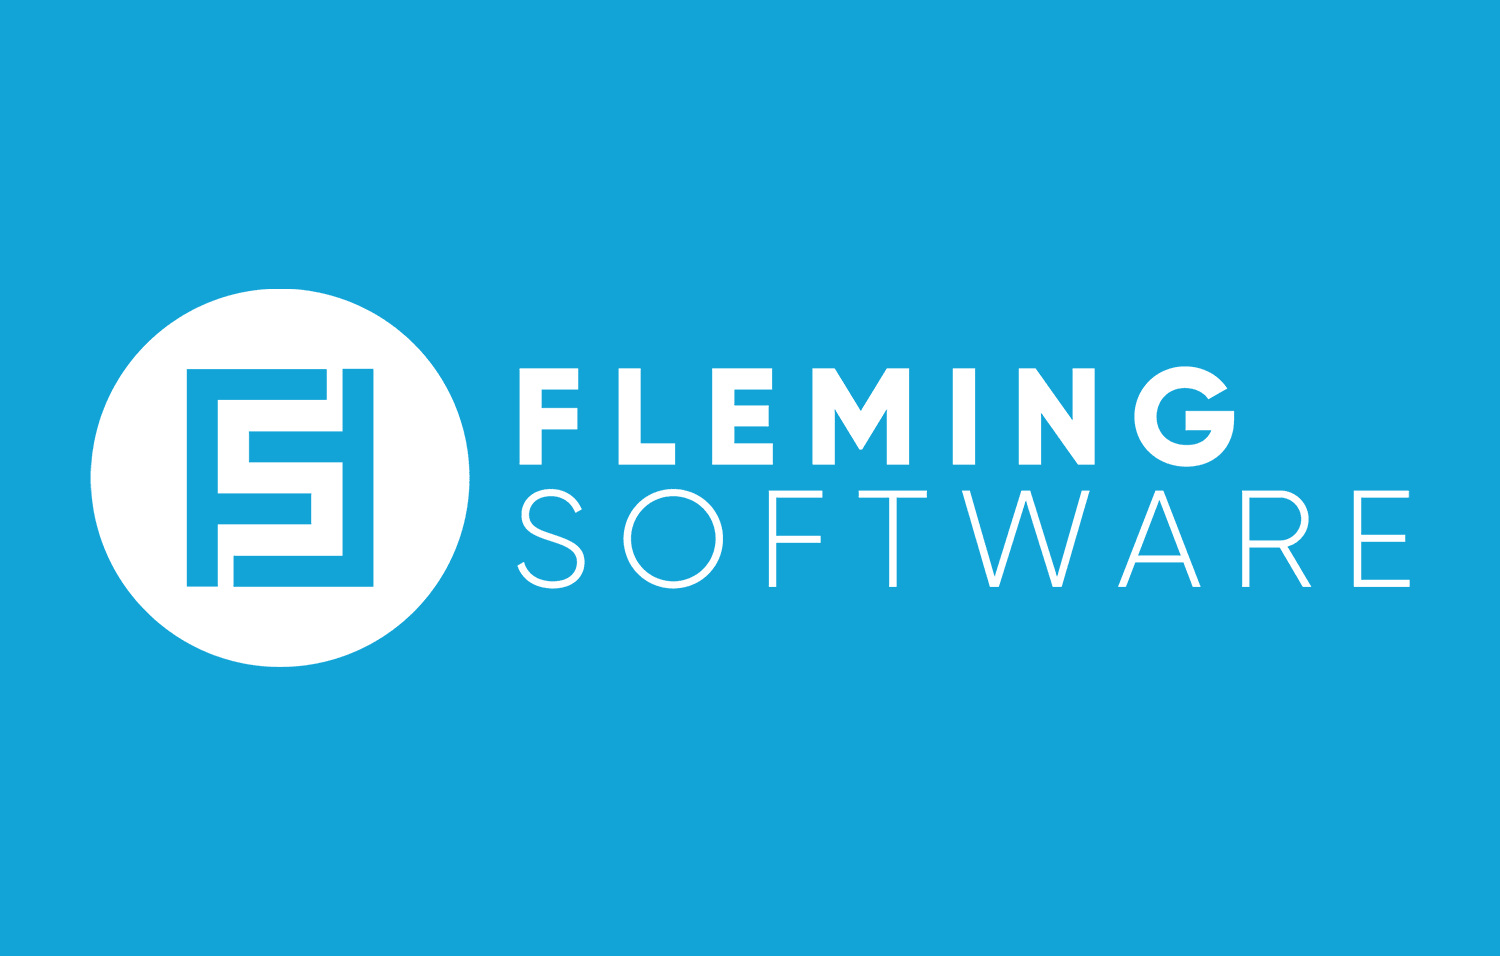 Fleming software logo explanation